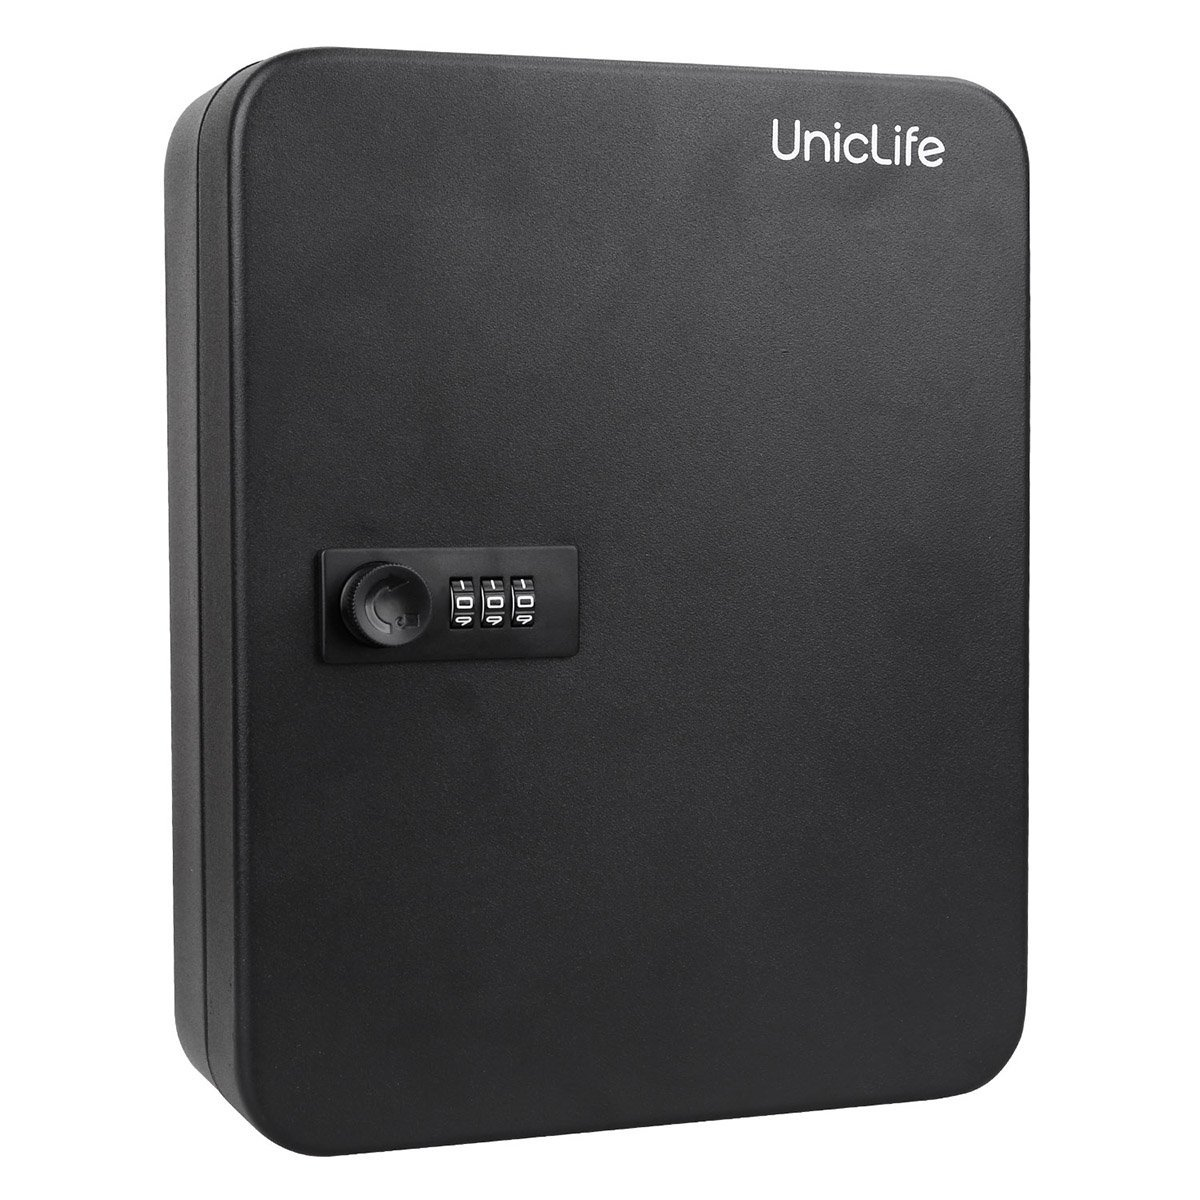 Uniclife 48 Key Cabinet Steel Security Lock Box with Combination Lock, Black, Wall Mount